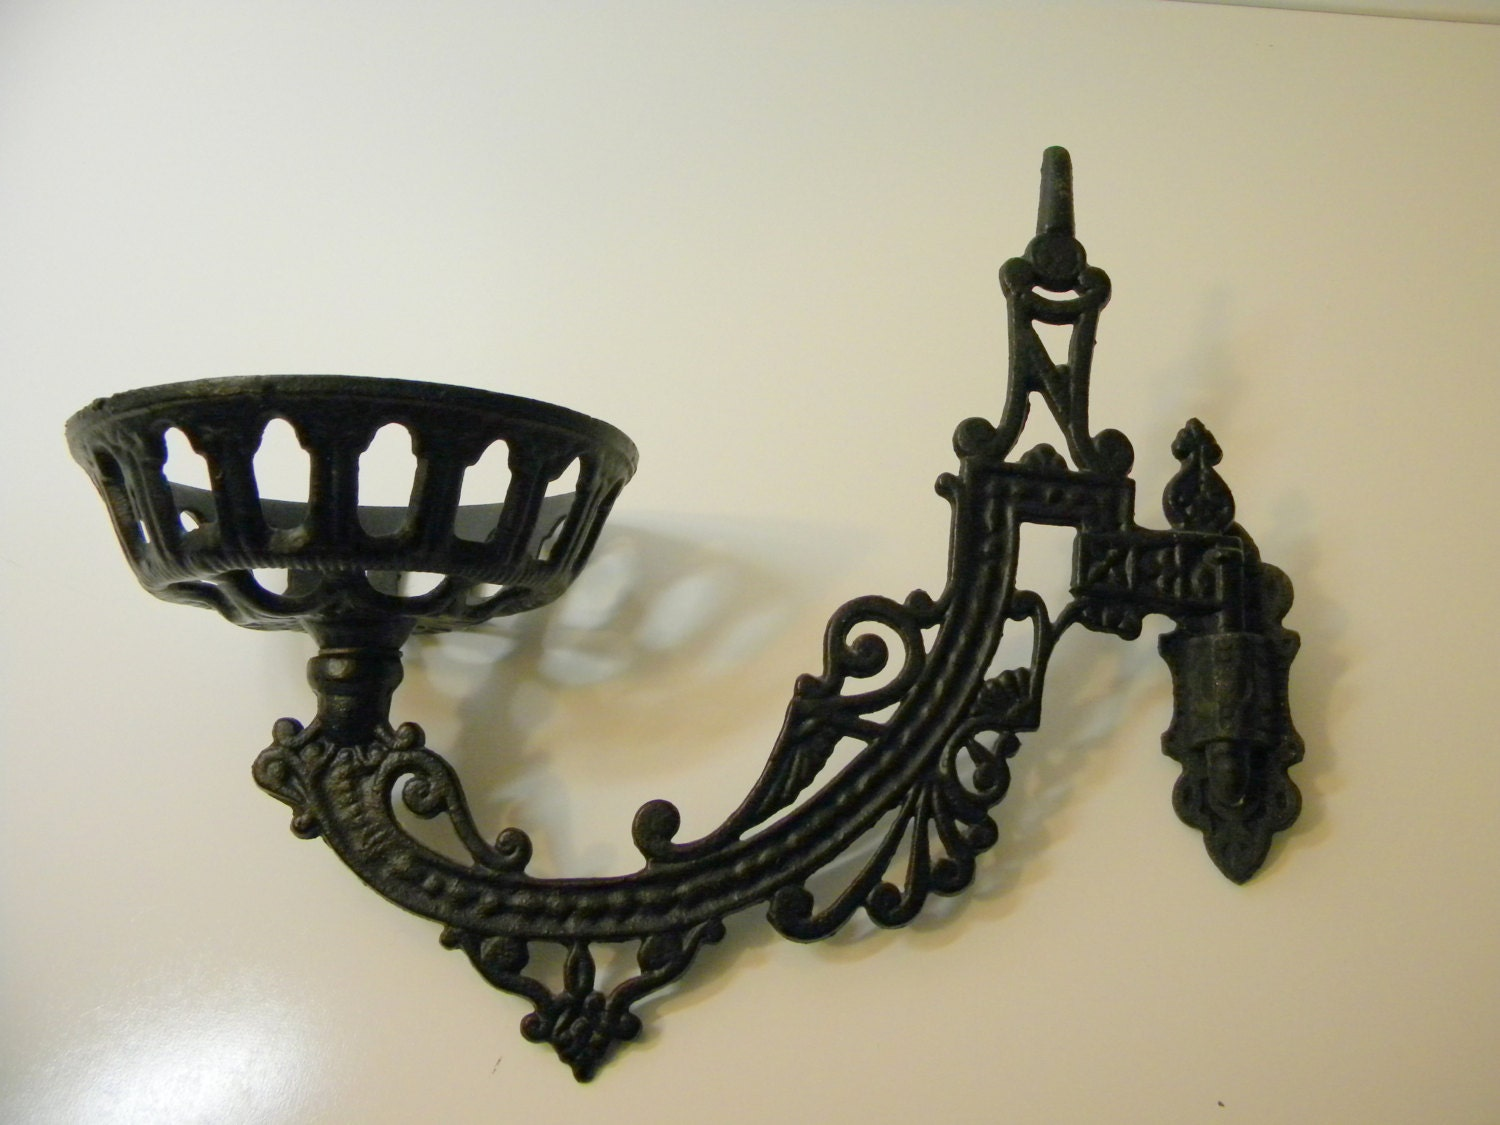 Vintage Cast Iron Oil Lamp Wall Sconce by TGALCOLLECTIBLES on Etsy